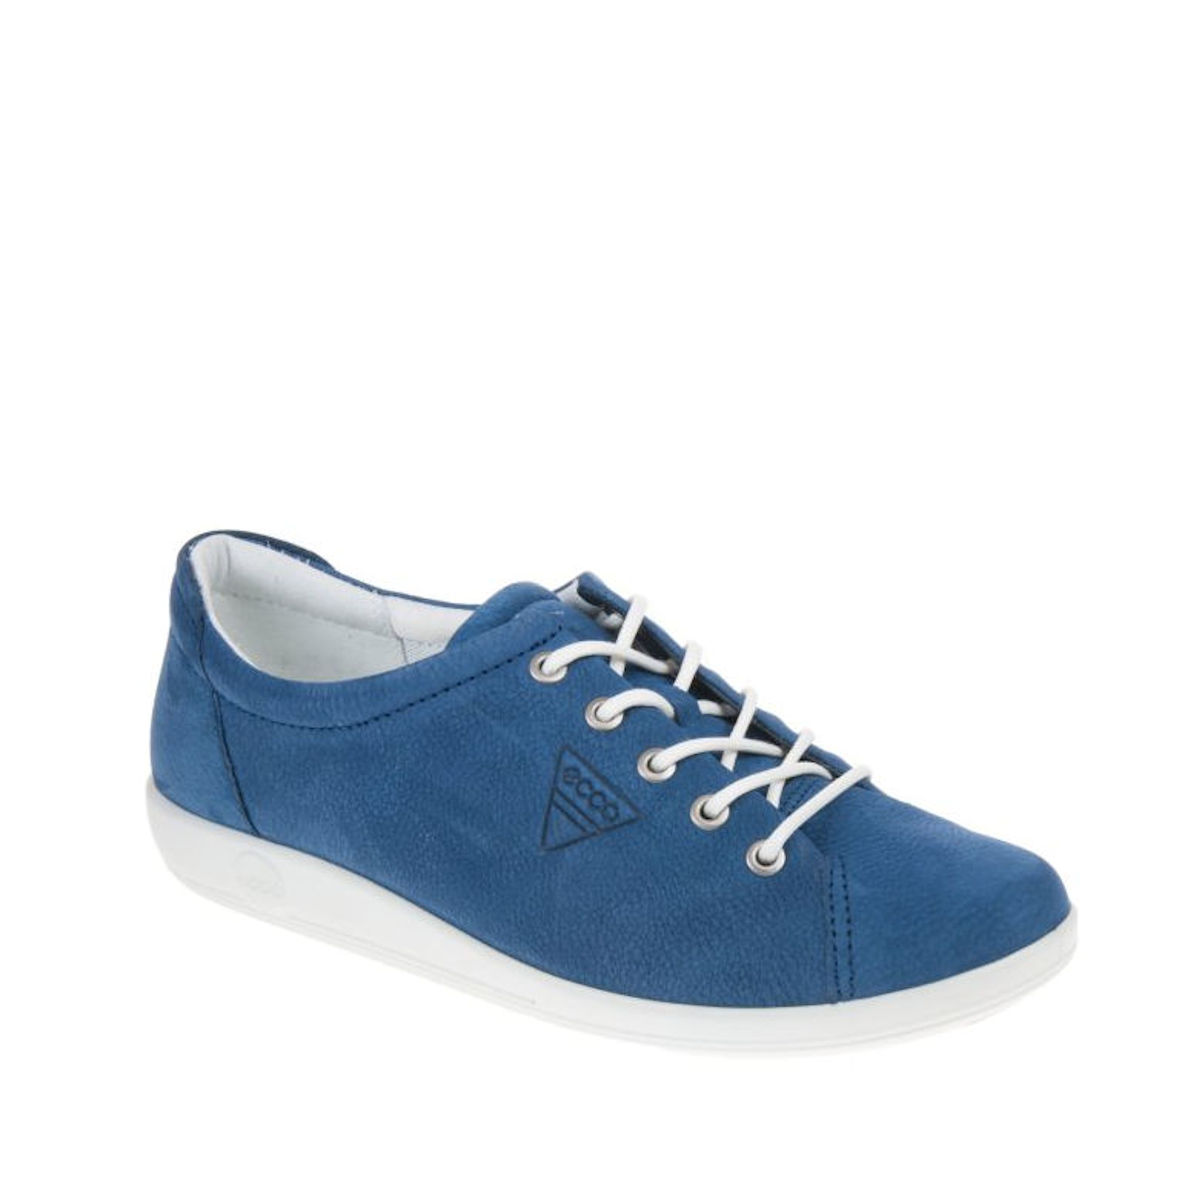 Ecco Soft 2 True Navy soft leather trainers